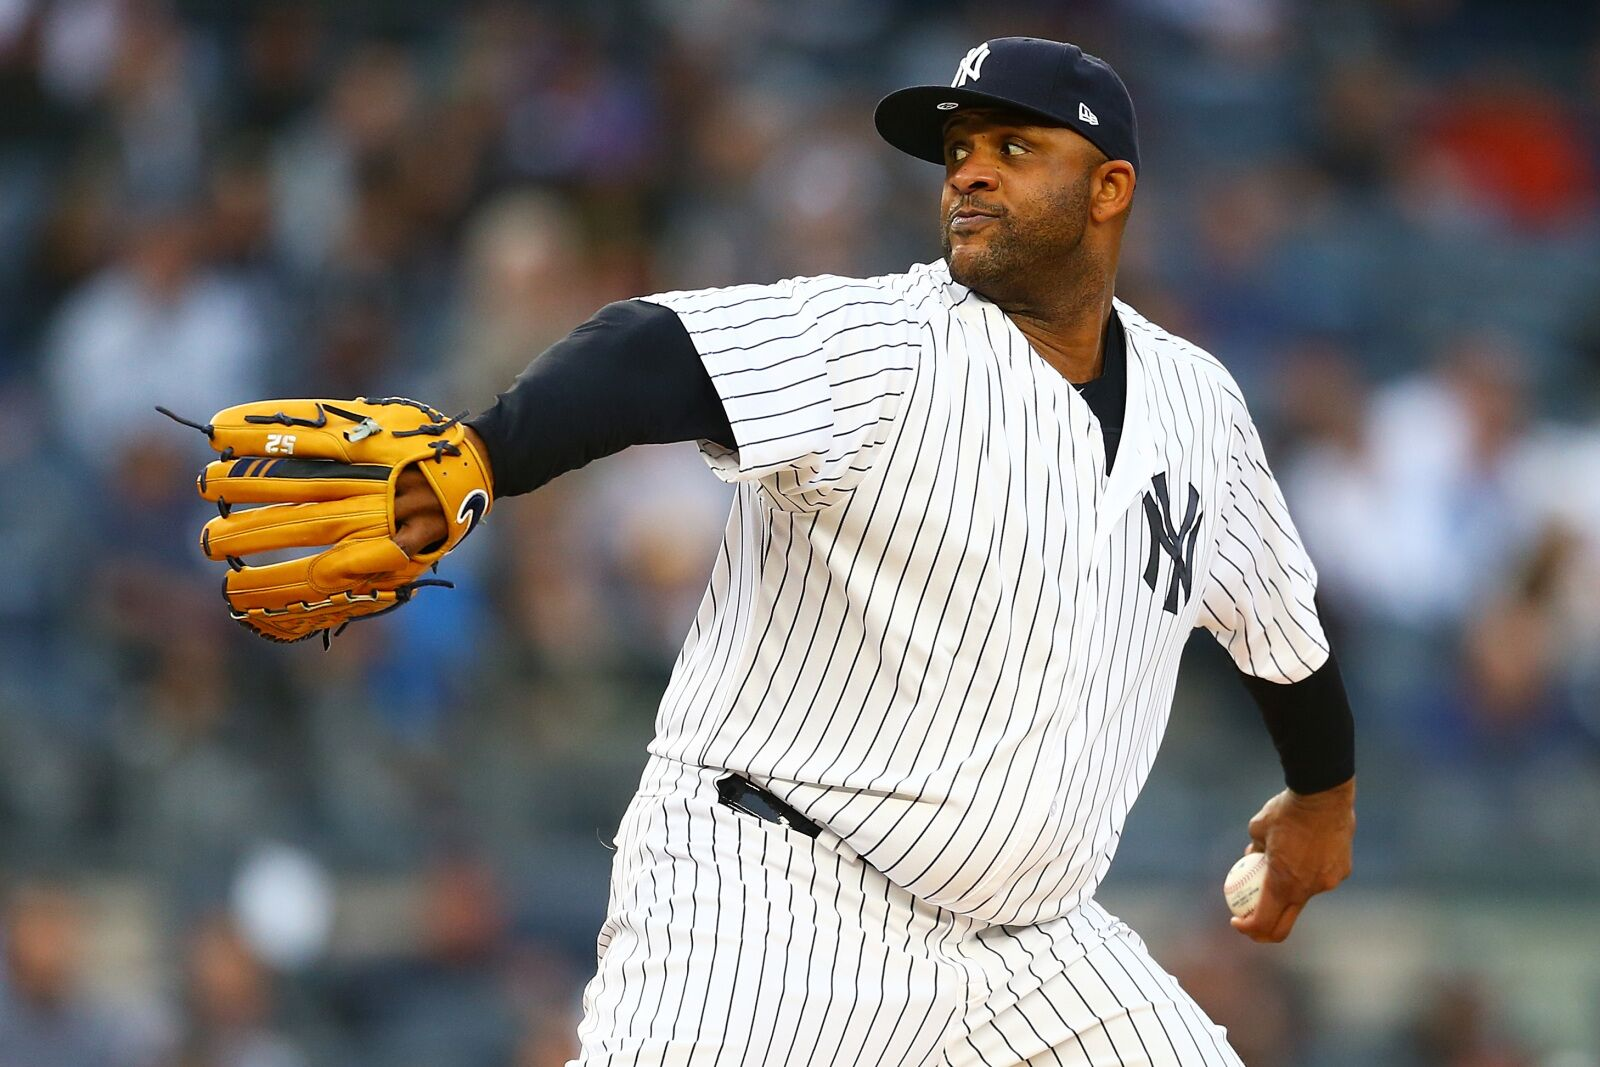 Yankees: 2019 will be CC Sabathia's last season